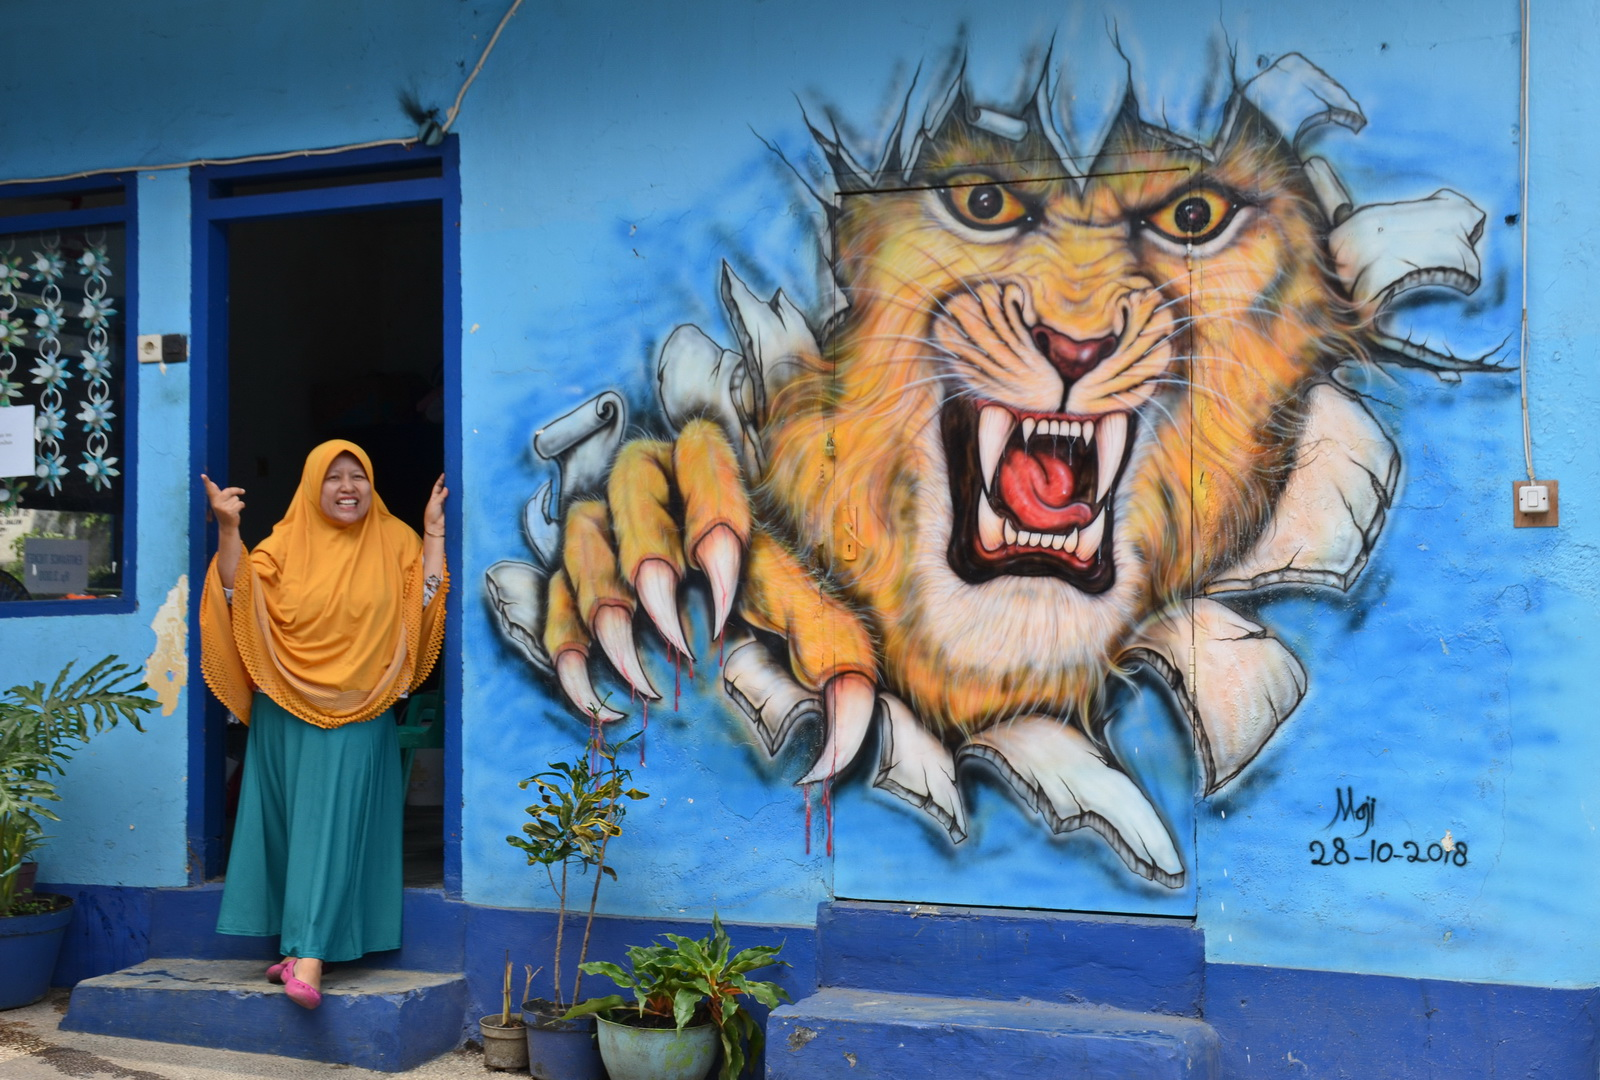 Malang's Rainbow Village, Indonesia. The local team, Arema FC's mascot being a lion